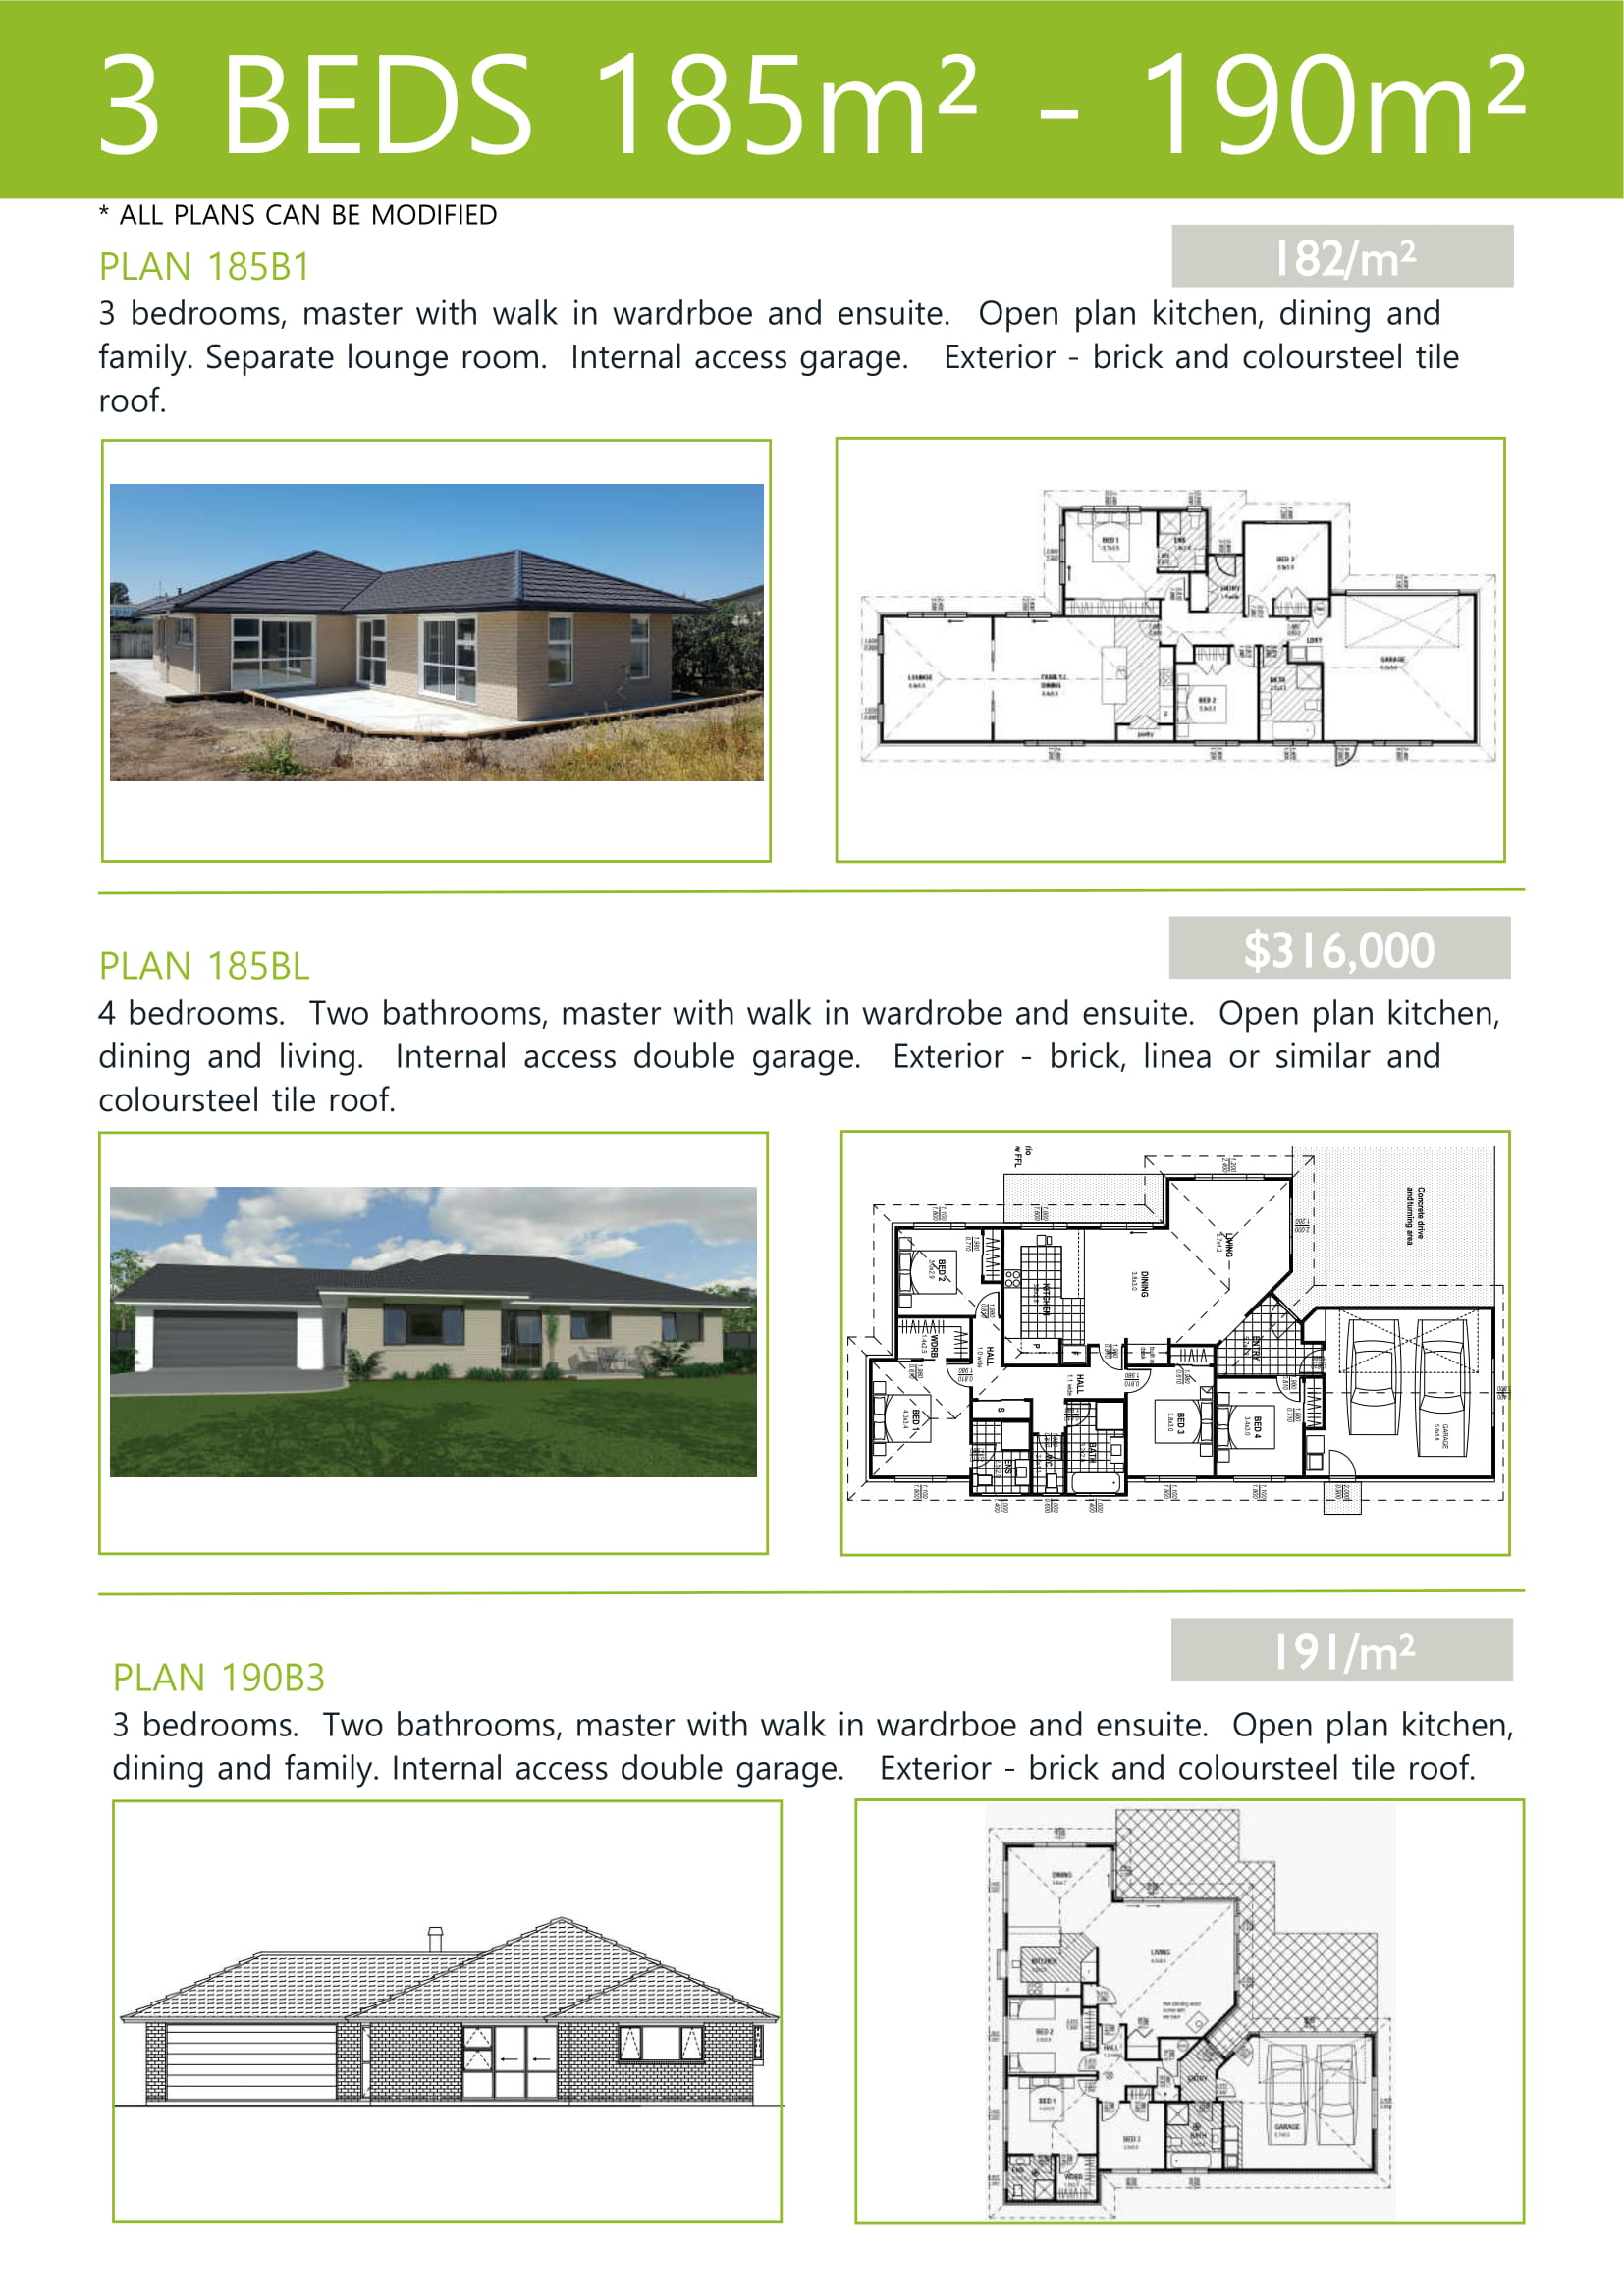 Plans up to 190M2